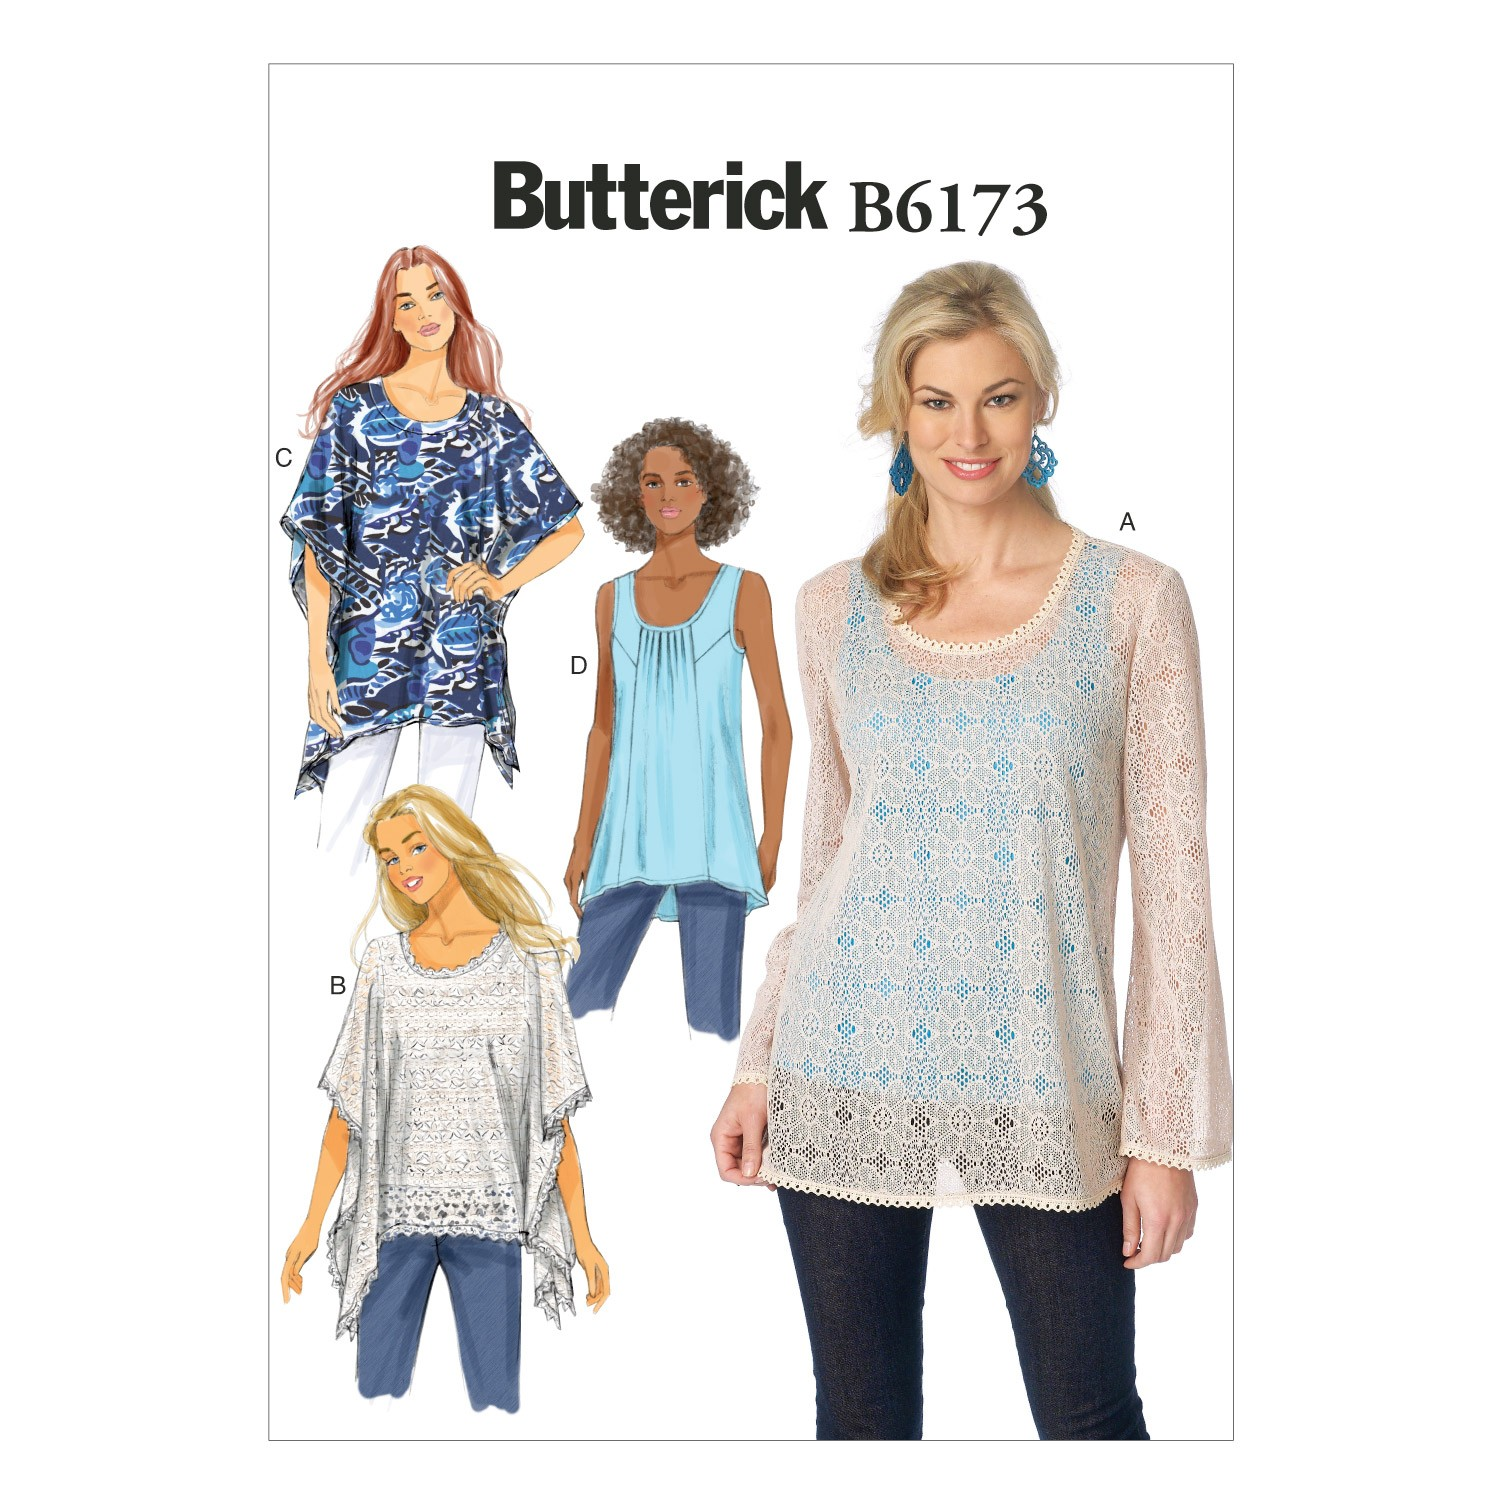 Butterick Sewing Pattern 6173 Misses' Pullover Top & Tunic